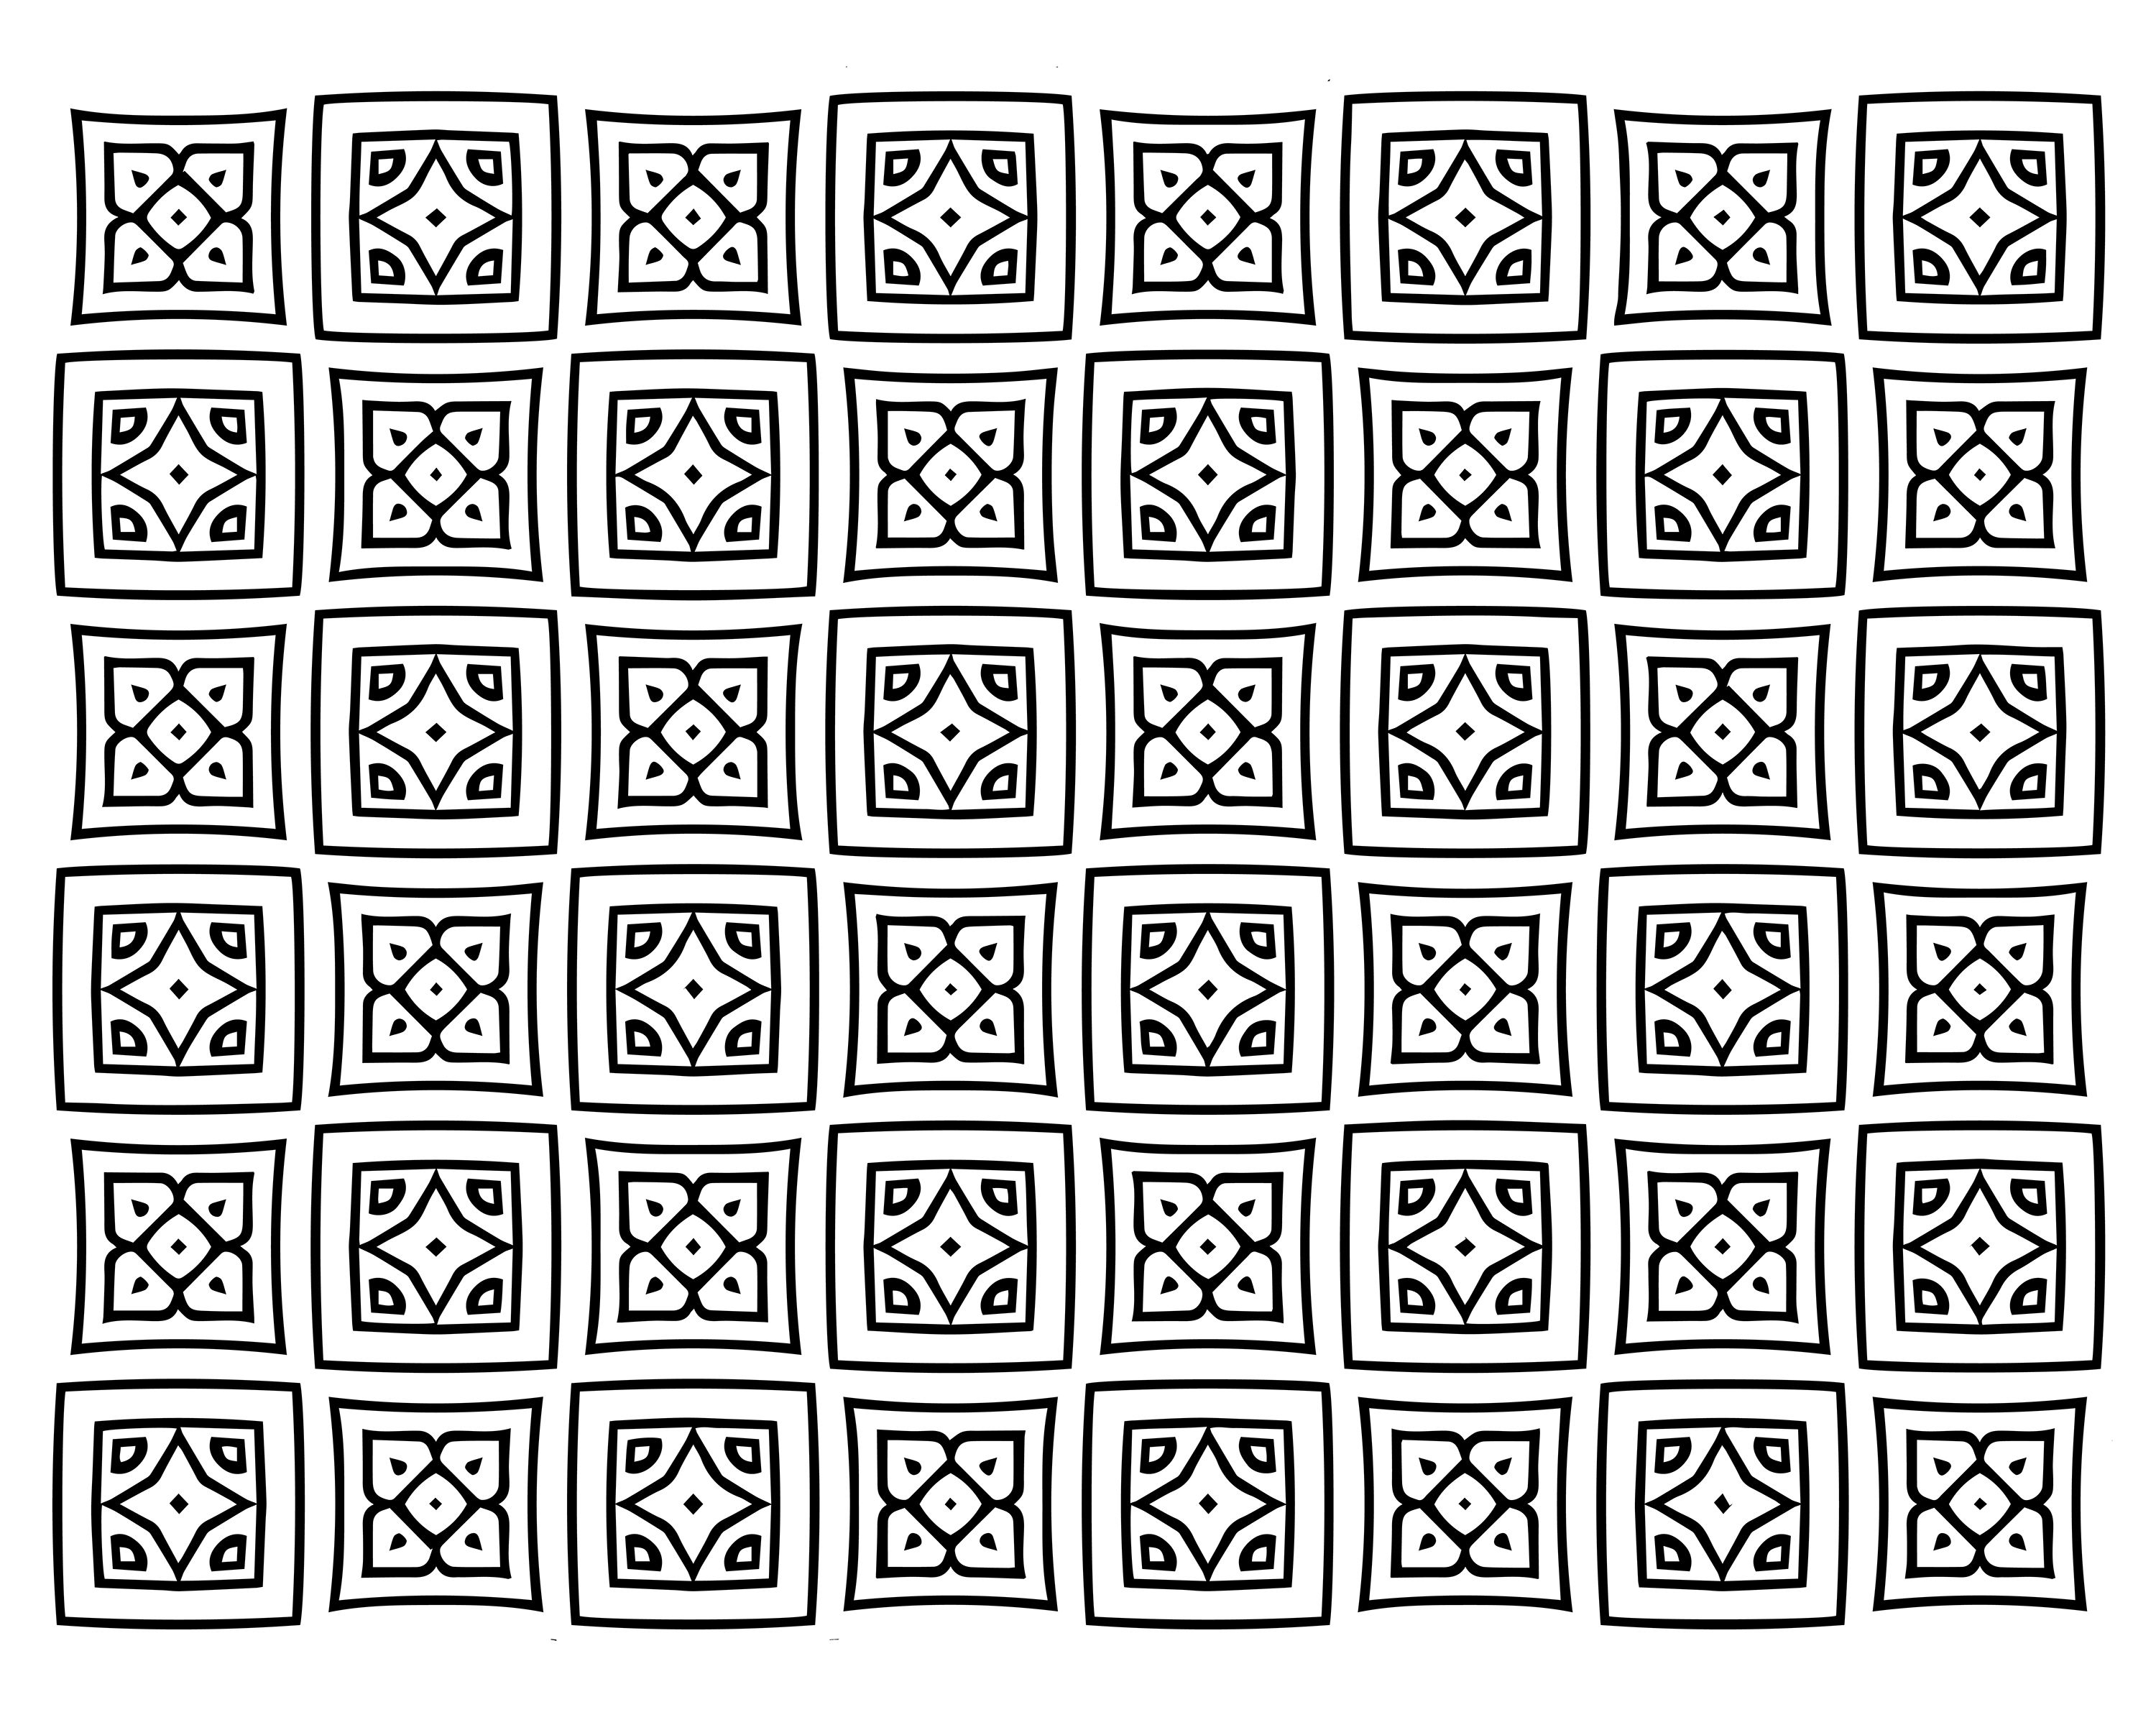 graphic about Quilt Templates Printable Free named Printable Quilt Behaviors Coloring Web pages at